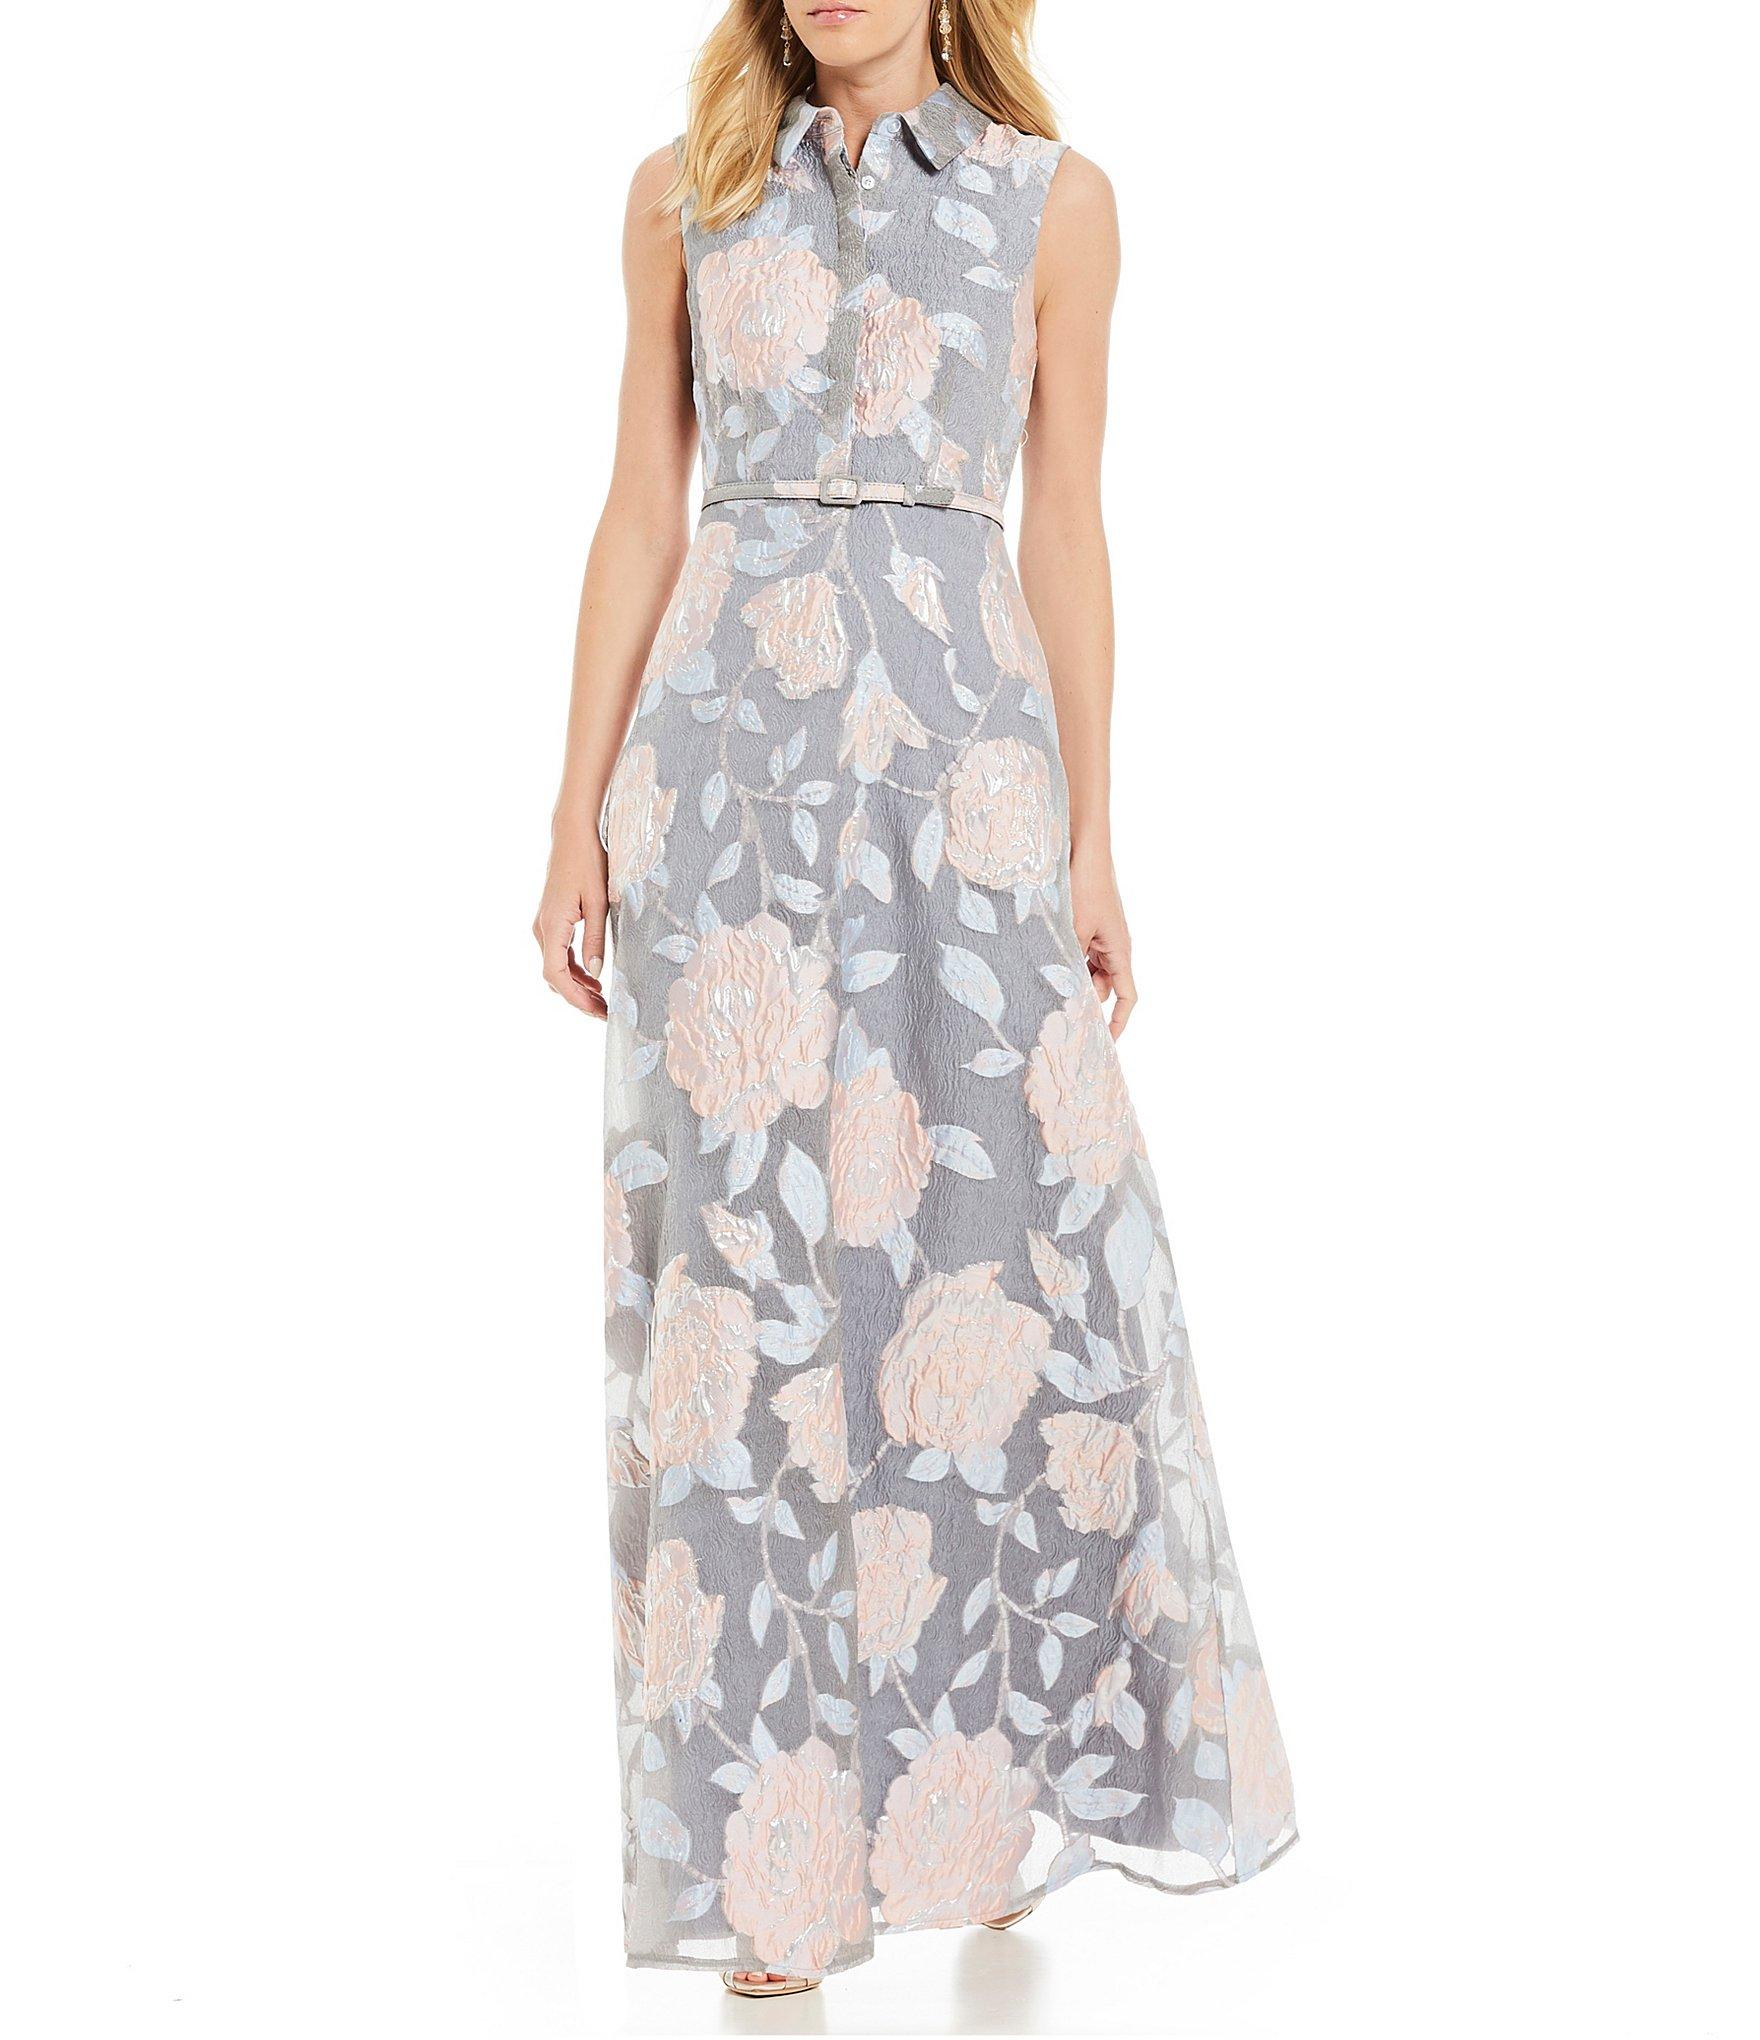 81c9c96147cd Belle By Badgley Mischka - Multicolor Darcy Floral Print Collared Button  Front Belted Gown - Lyst. View fullscreen